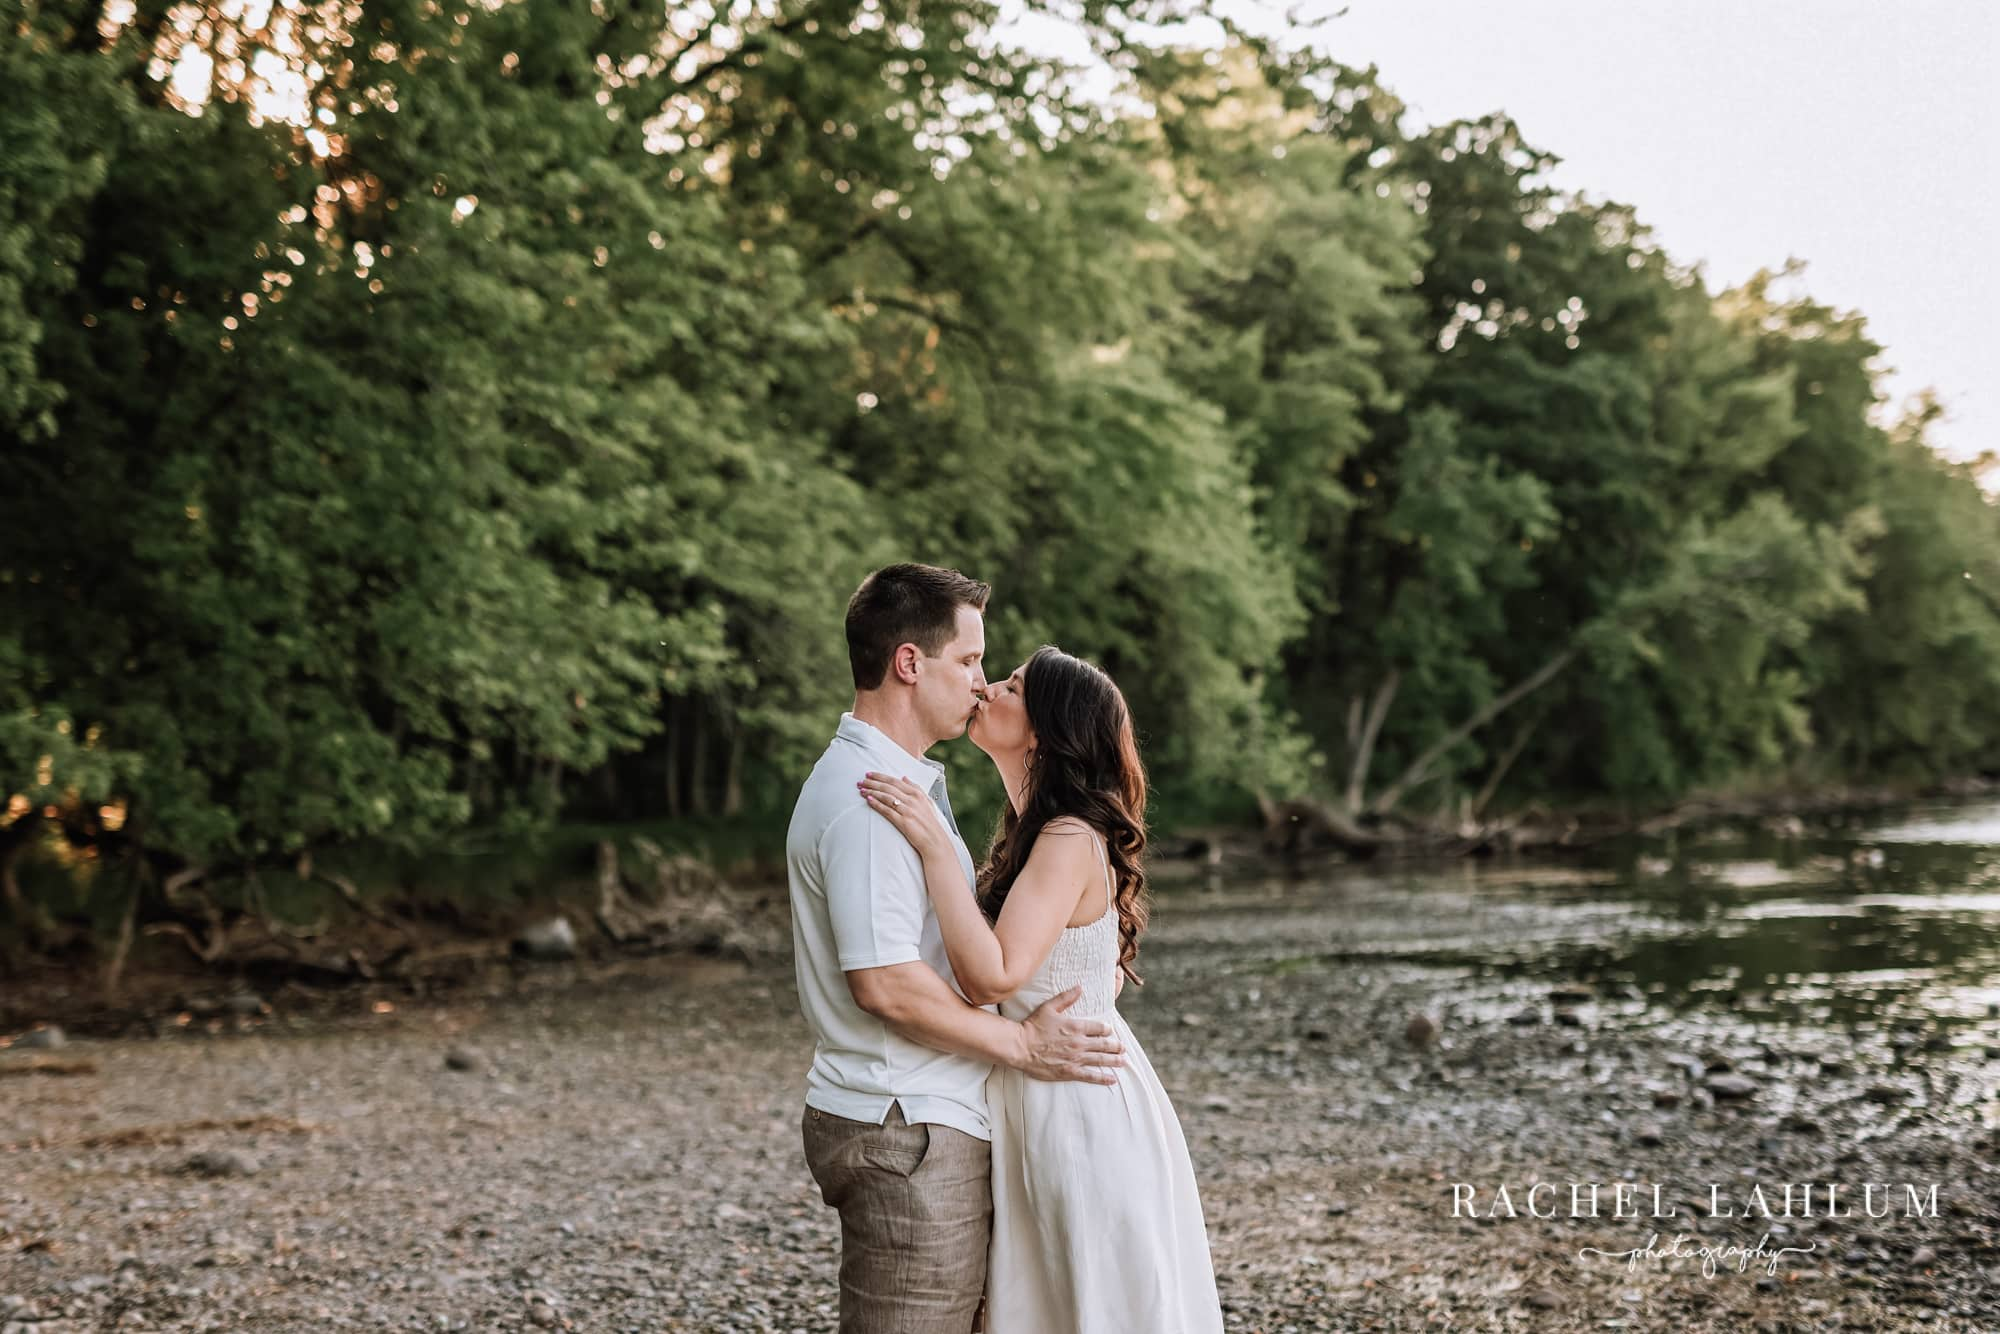 Couple kiss during engagement photography session at Montissippi Park.